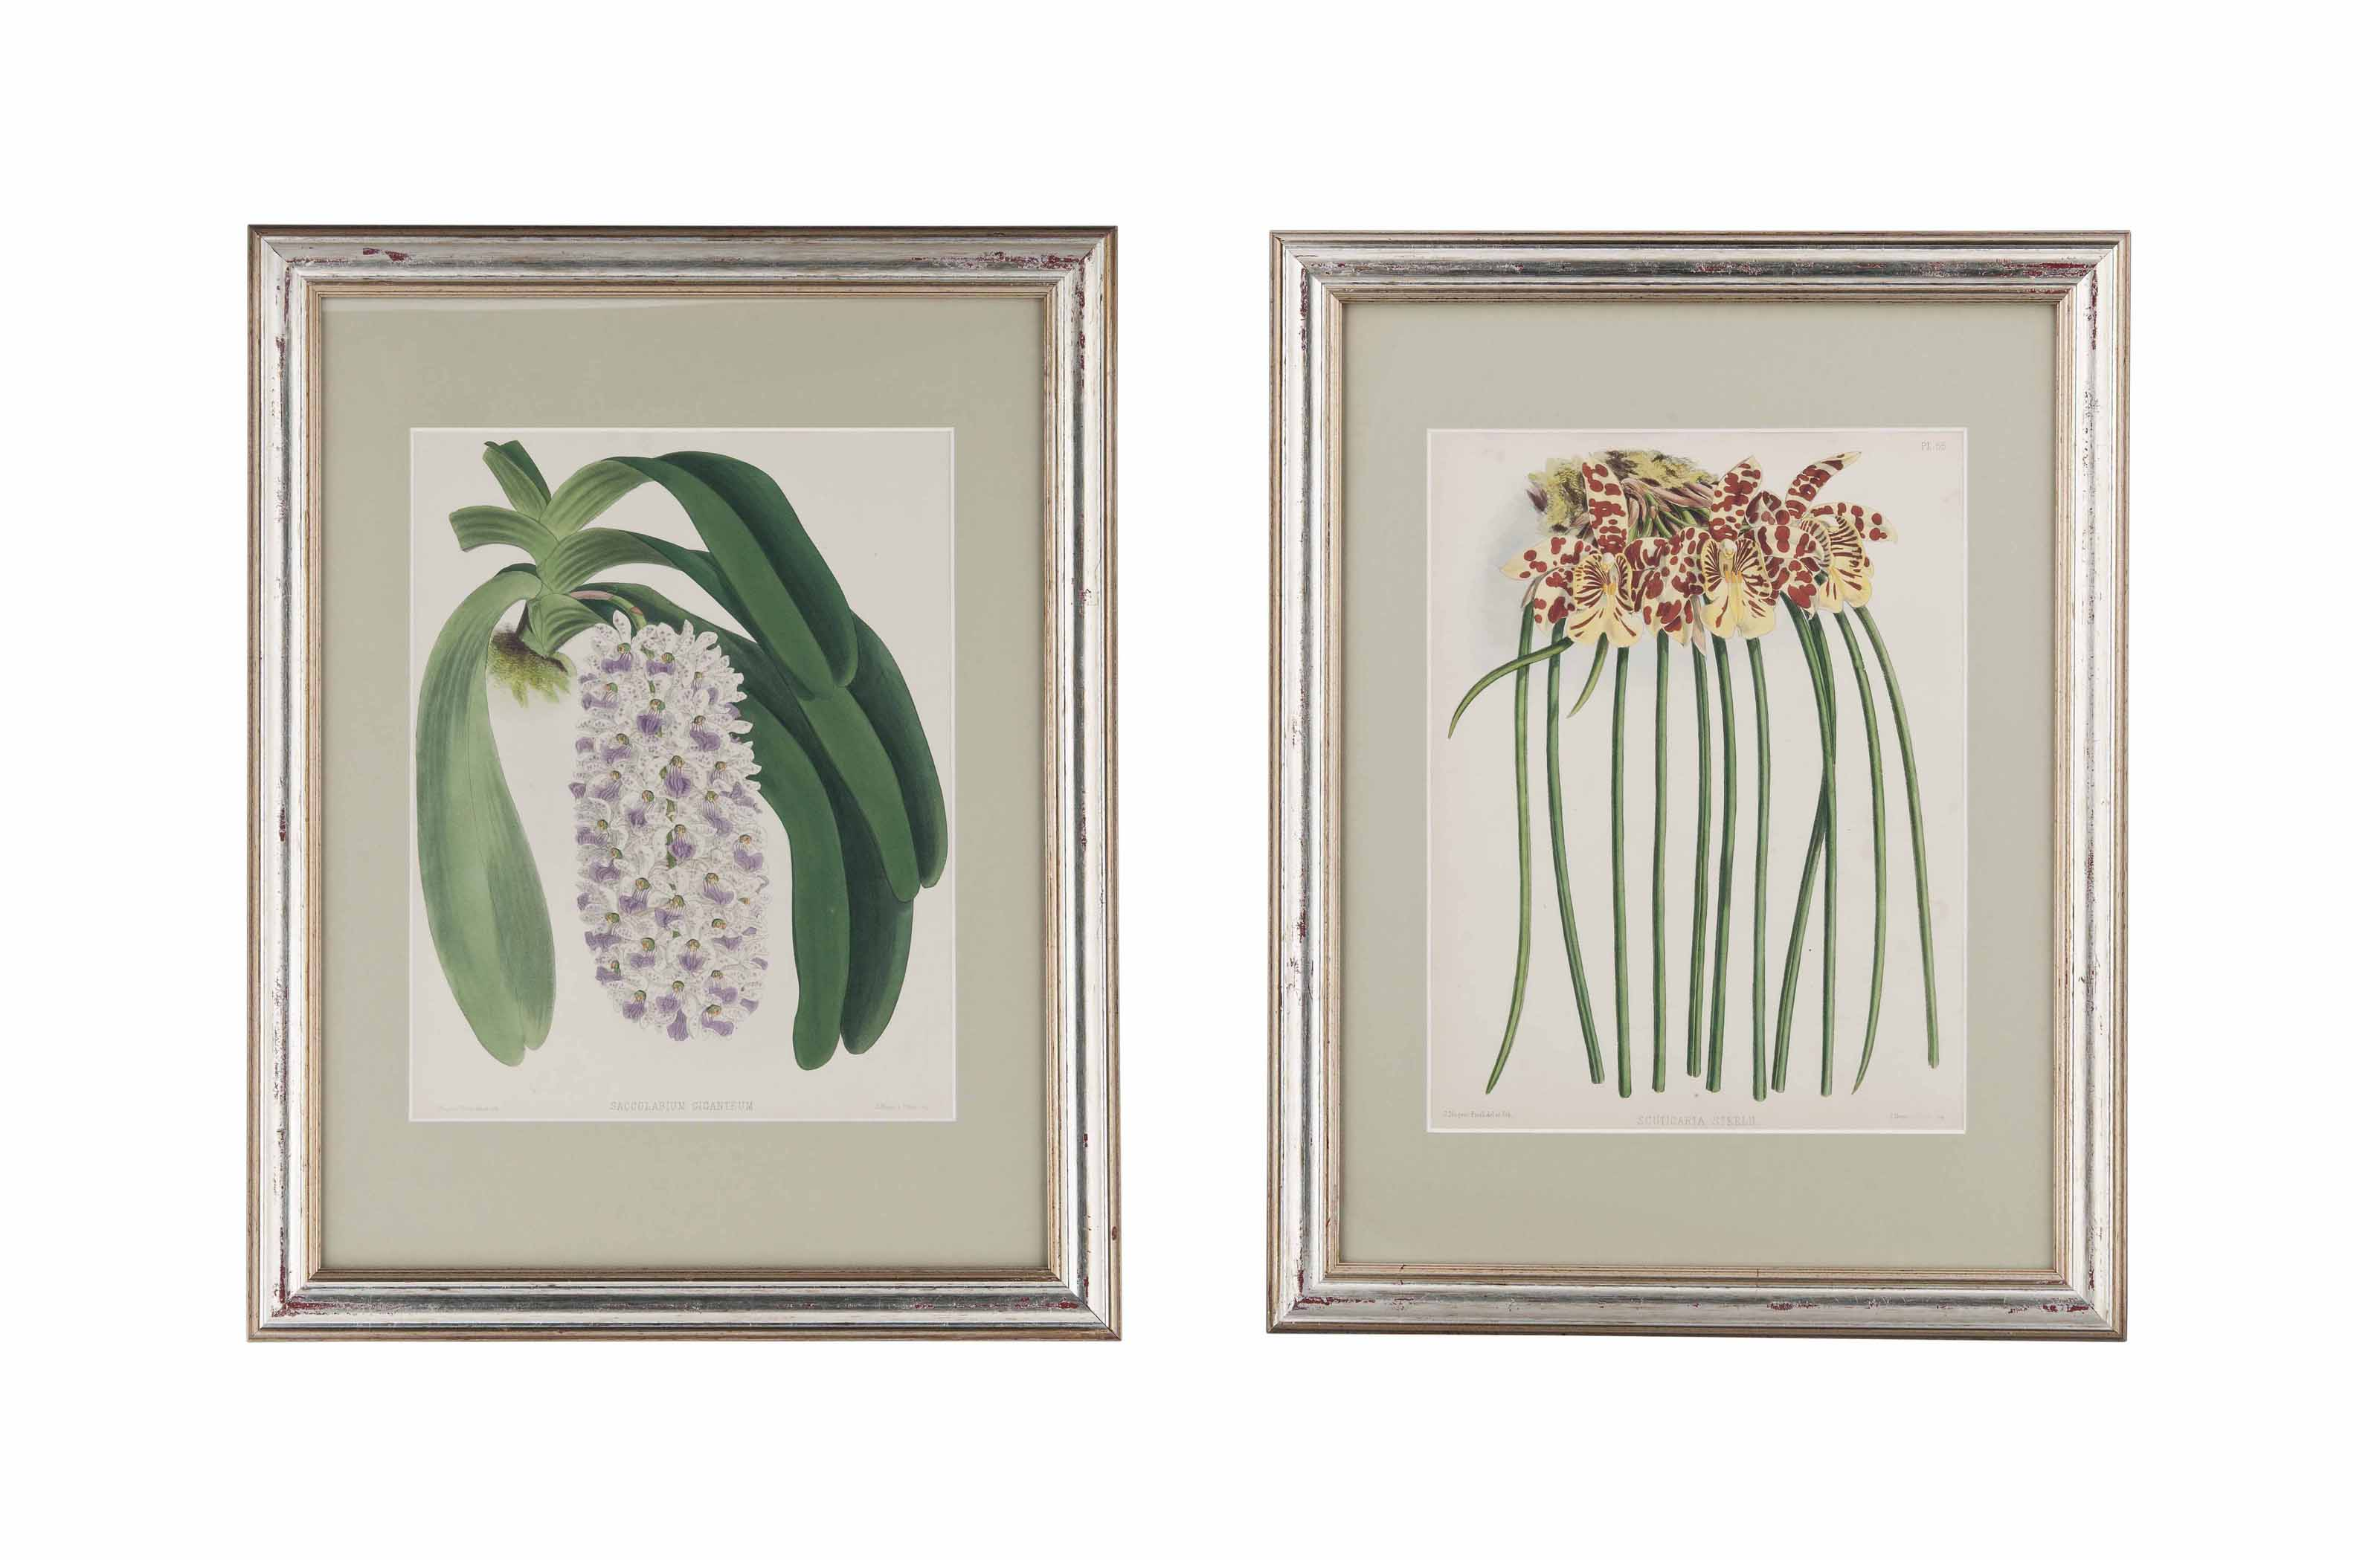 TWELVE COLOURED LITHOGRAPHS FROM THE ORCHID ALBUM